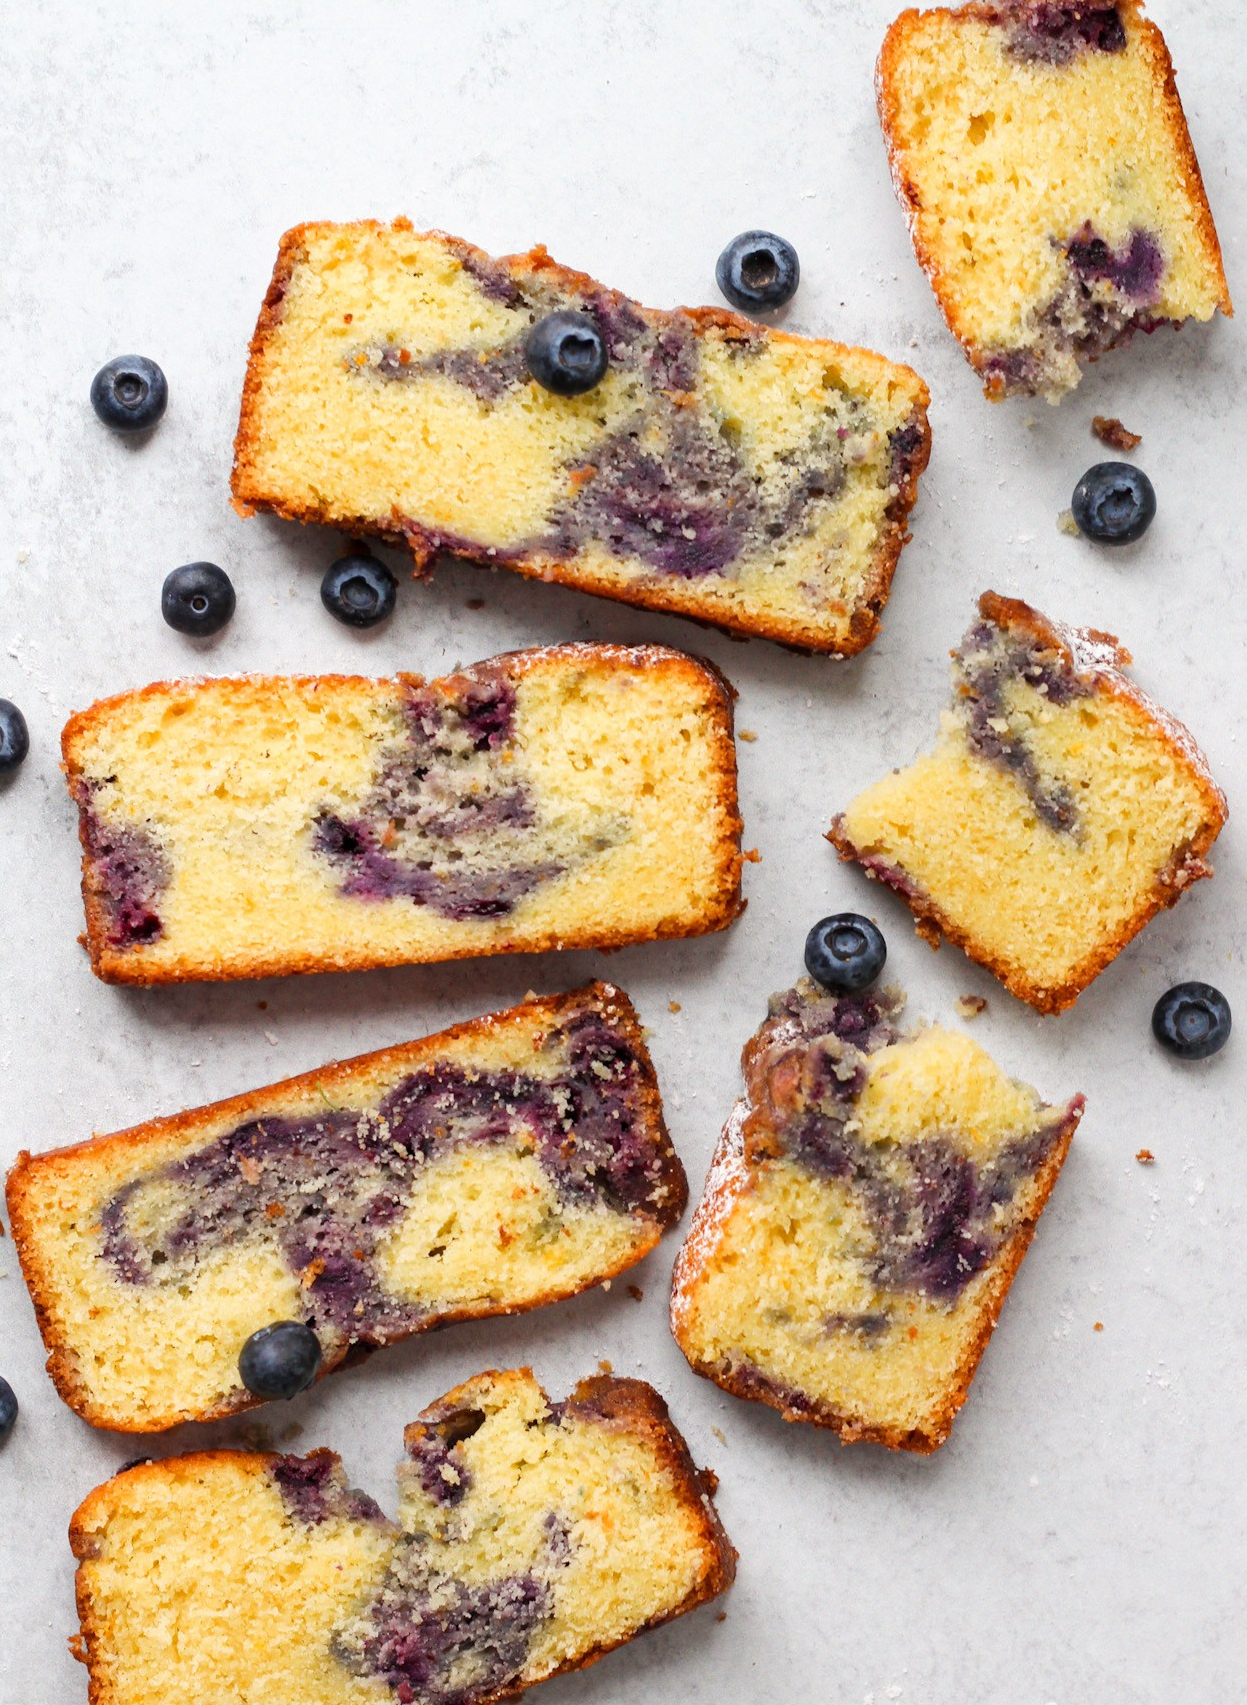 Mandarin Blueberry Swirl Cake & A Psychic Reading